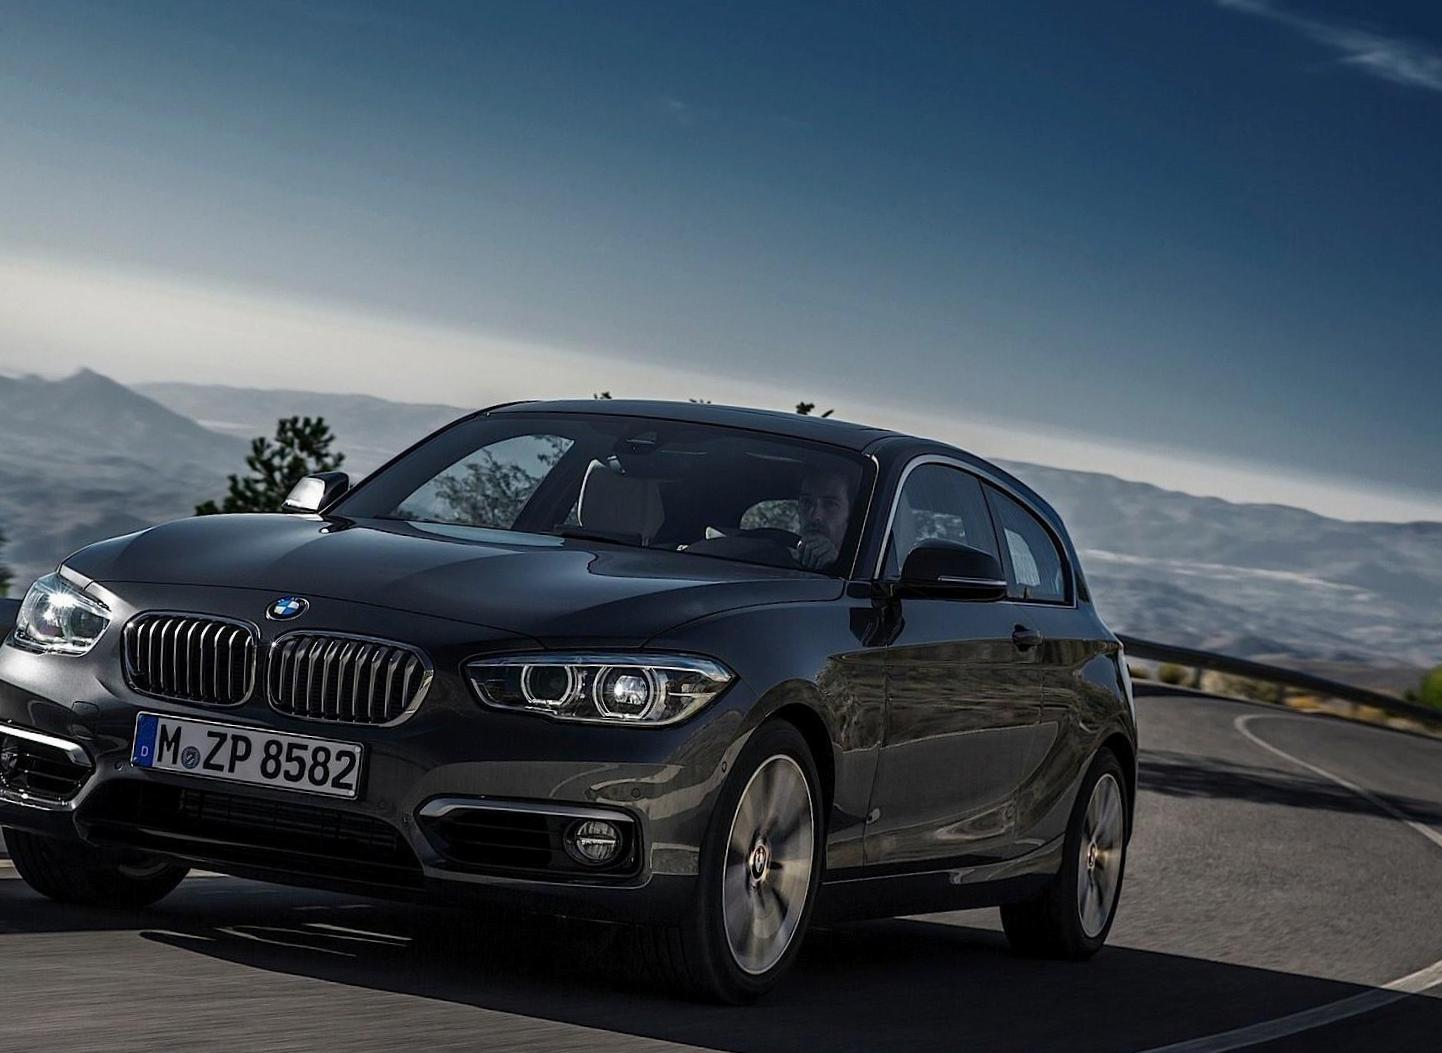 BMW 1 Series 3 doors (F21) Specification 2015